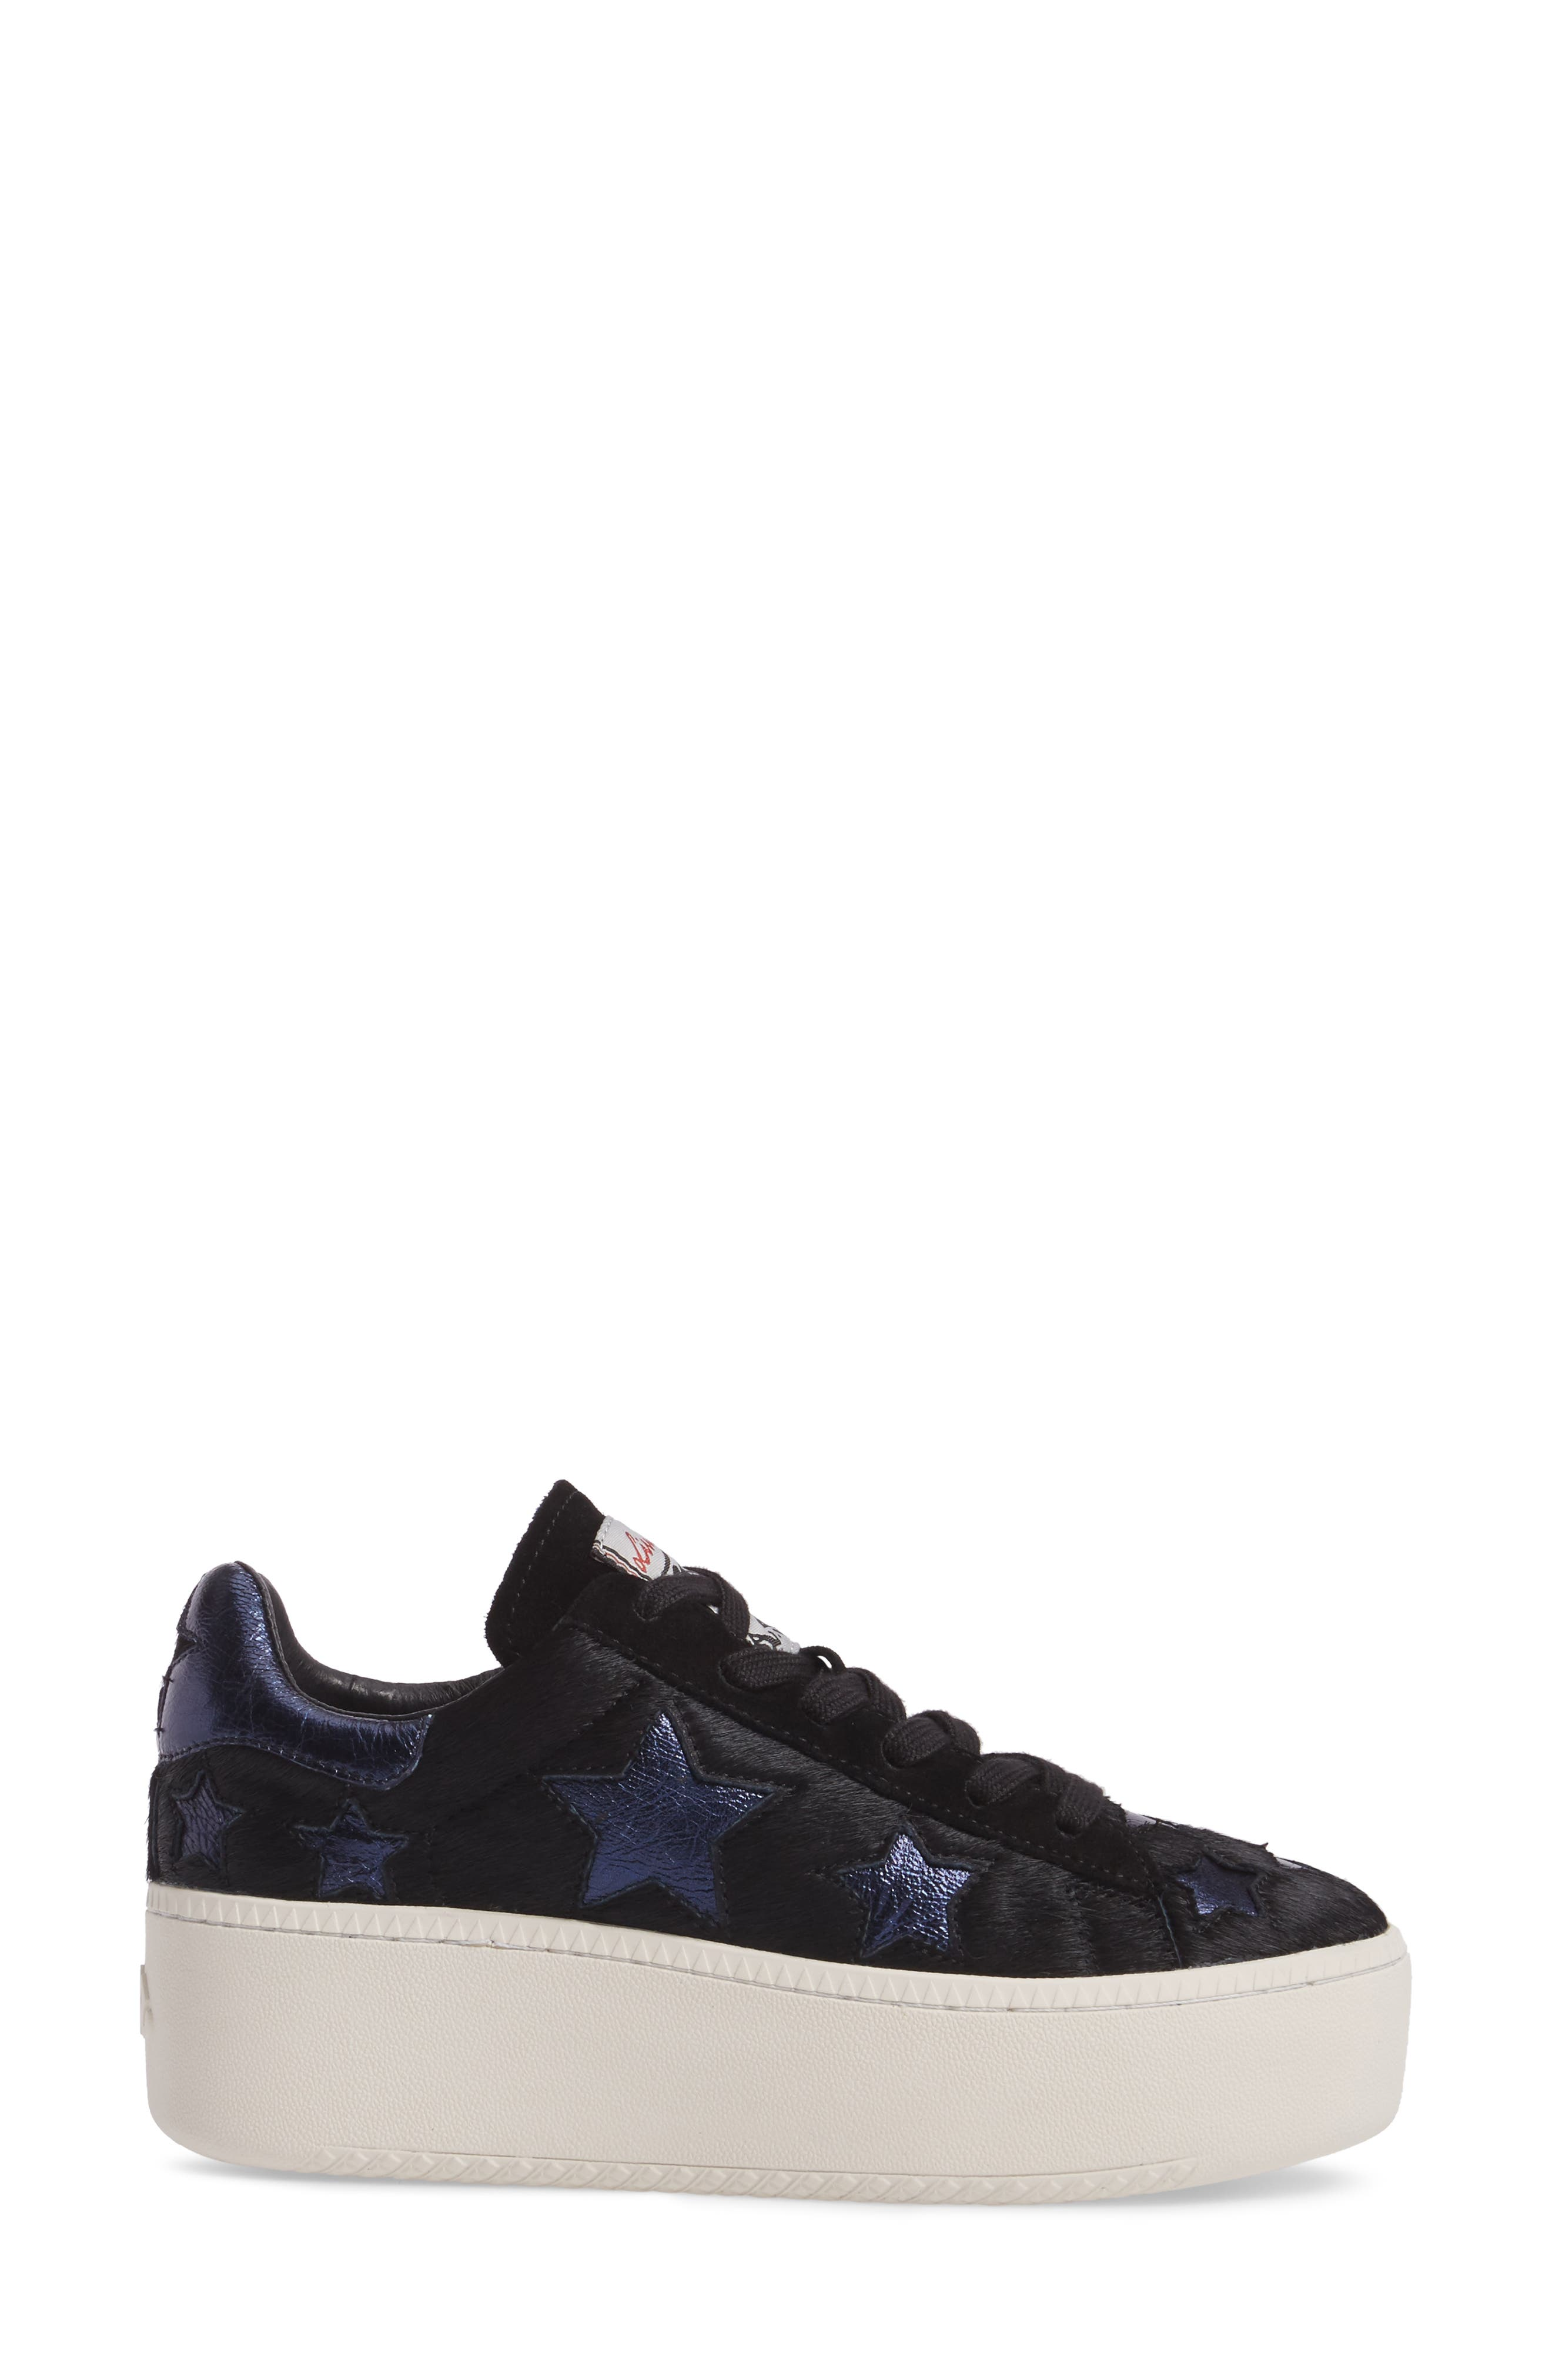 Cult Star Calf Hair Sneaker,                             Alternate thumbnail 3, color,                             001